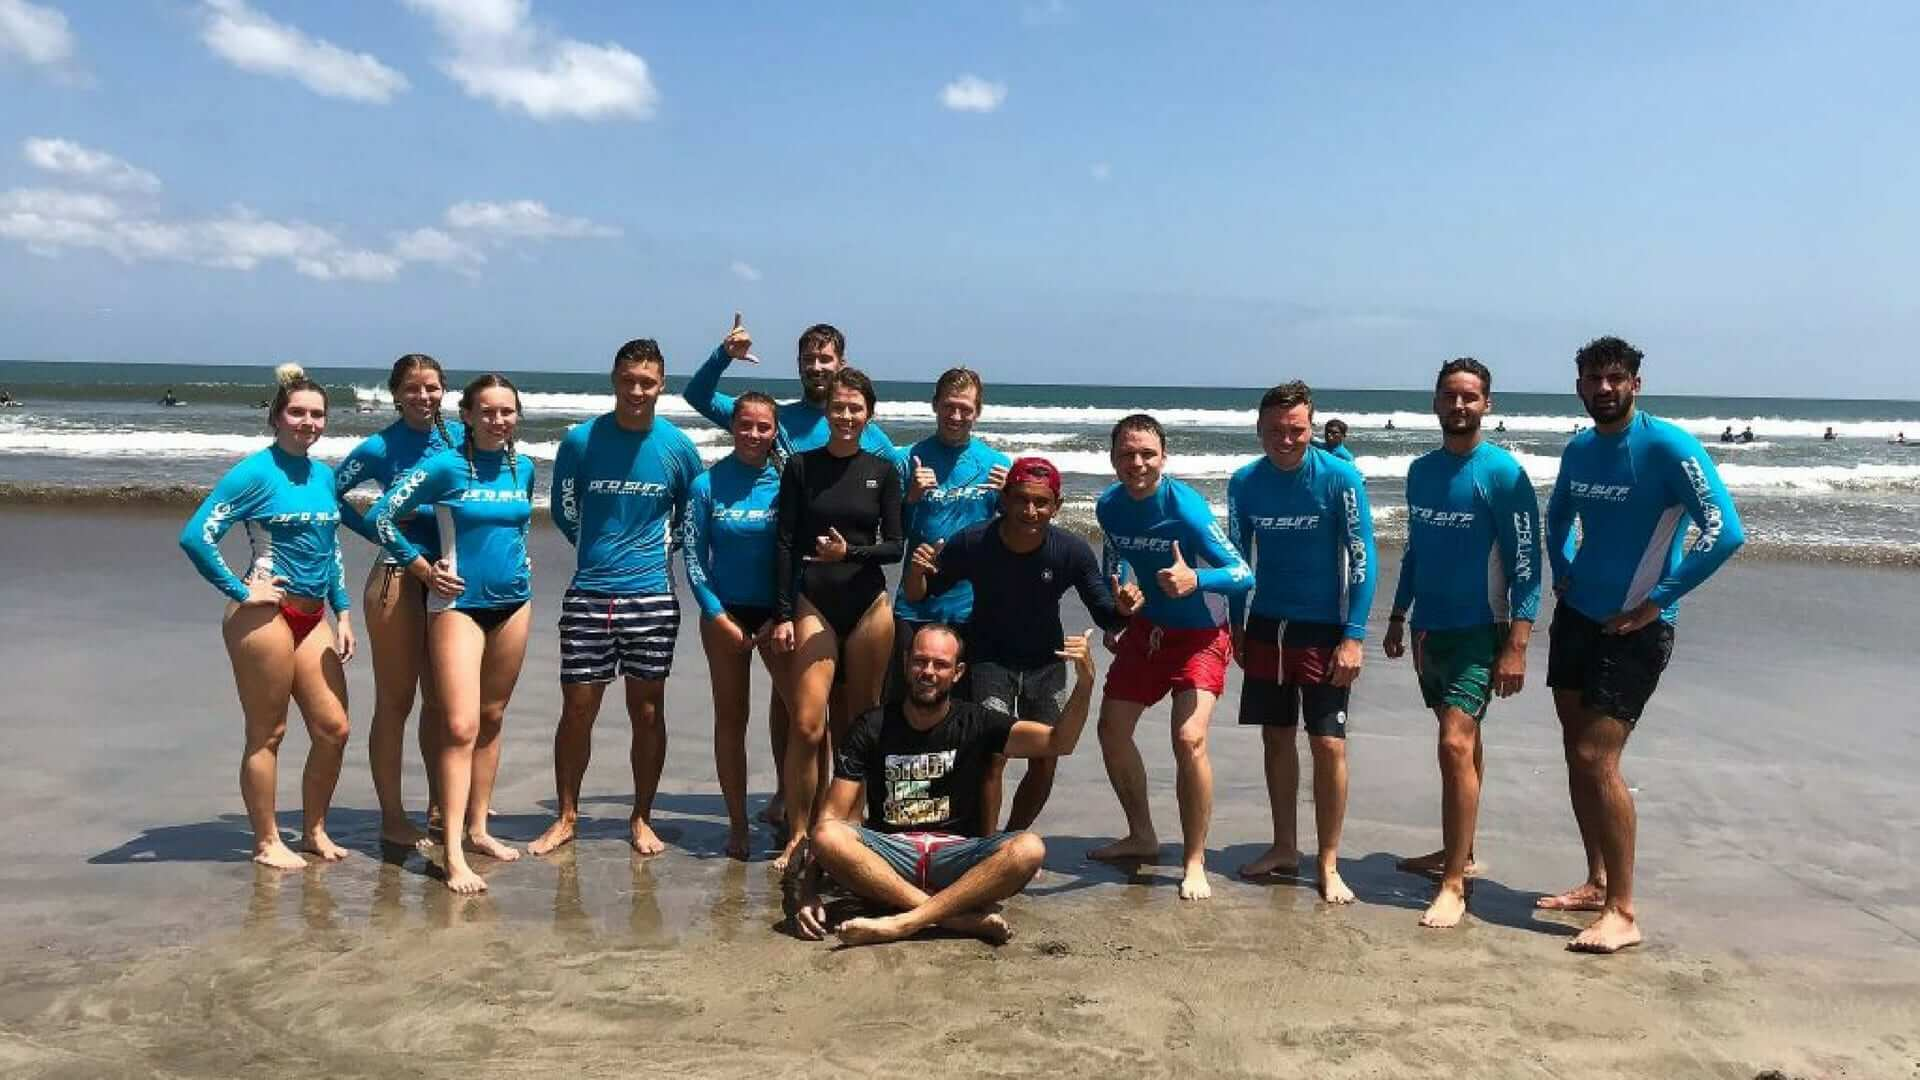 Group picture of happy students after surfing in Bali.